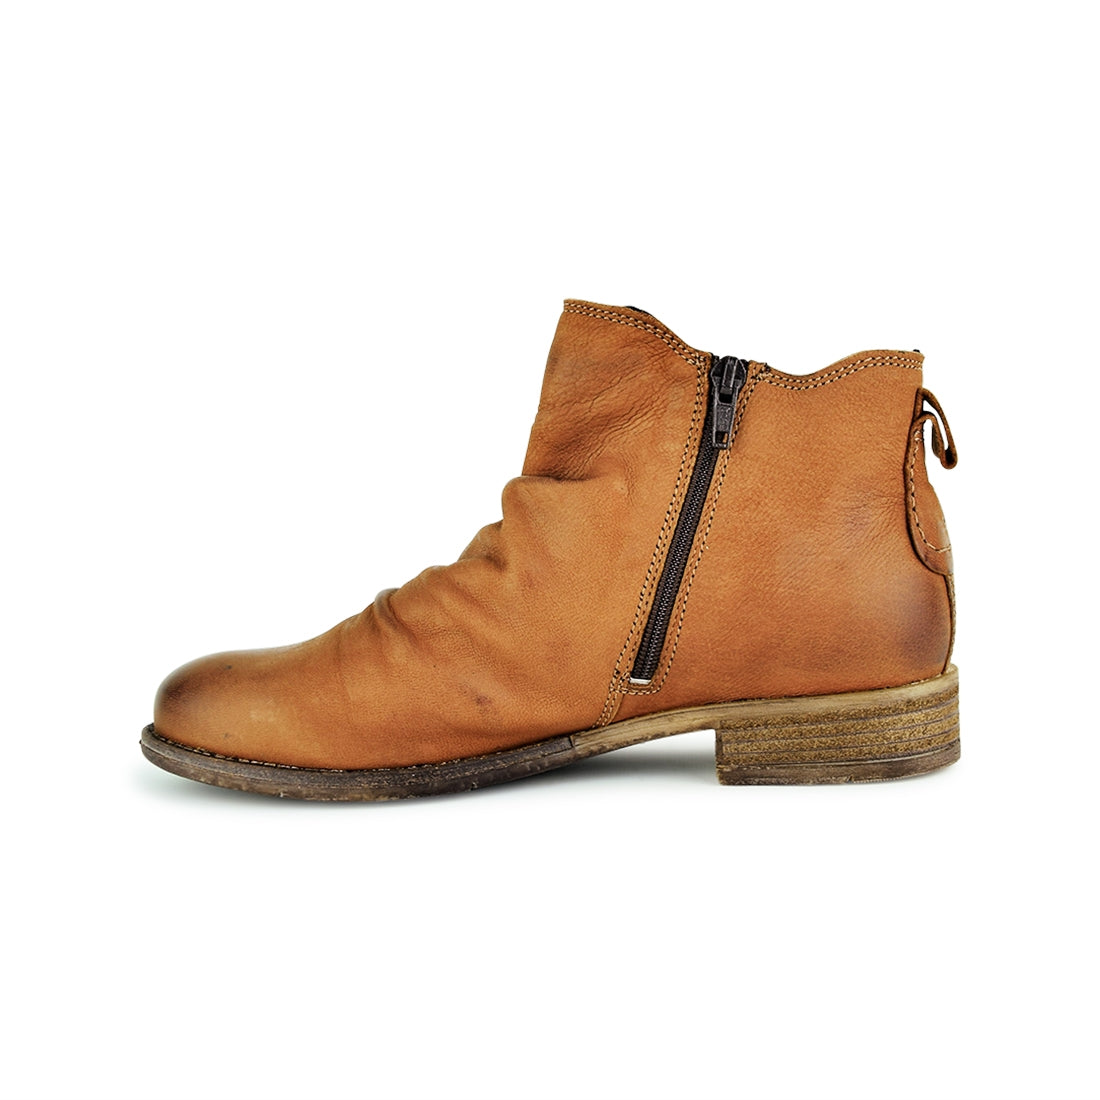 ENNA - Josef Seibel Ankle Boots Tan Rub